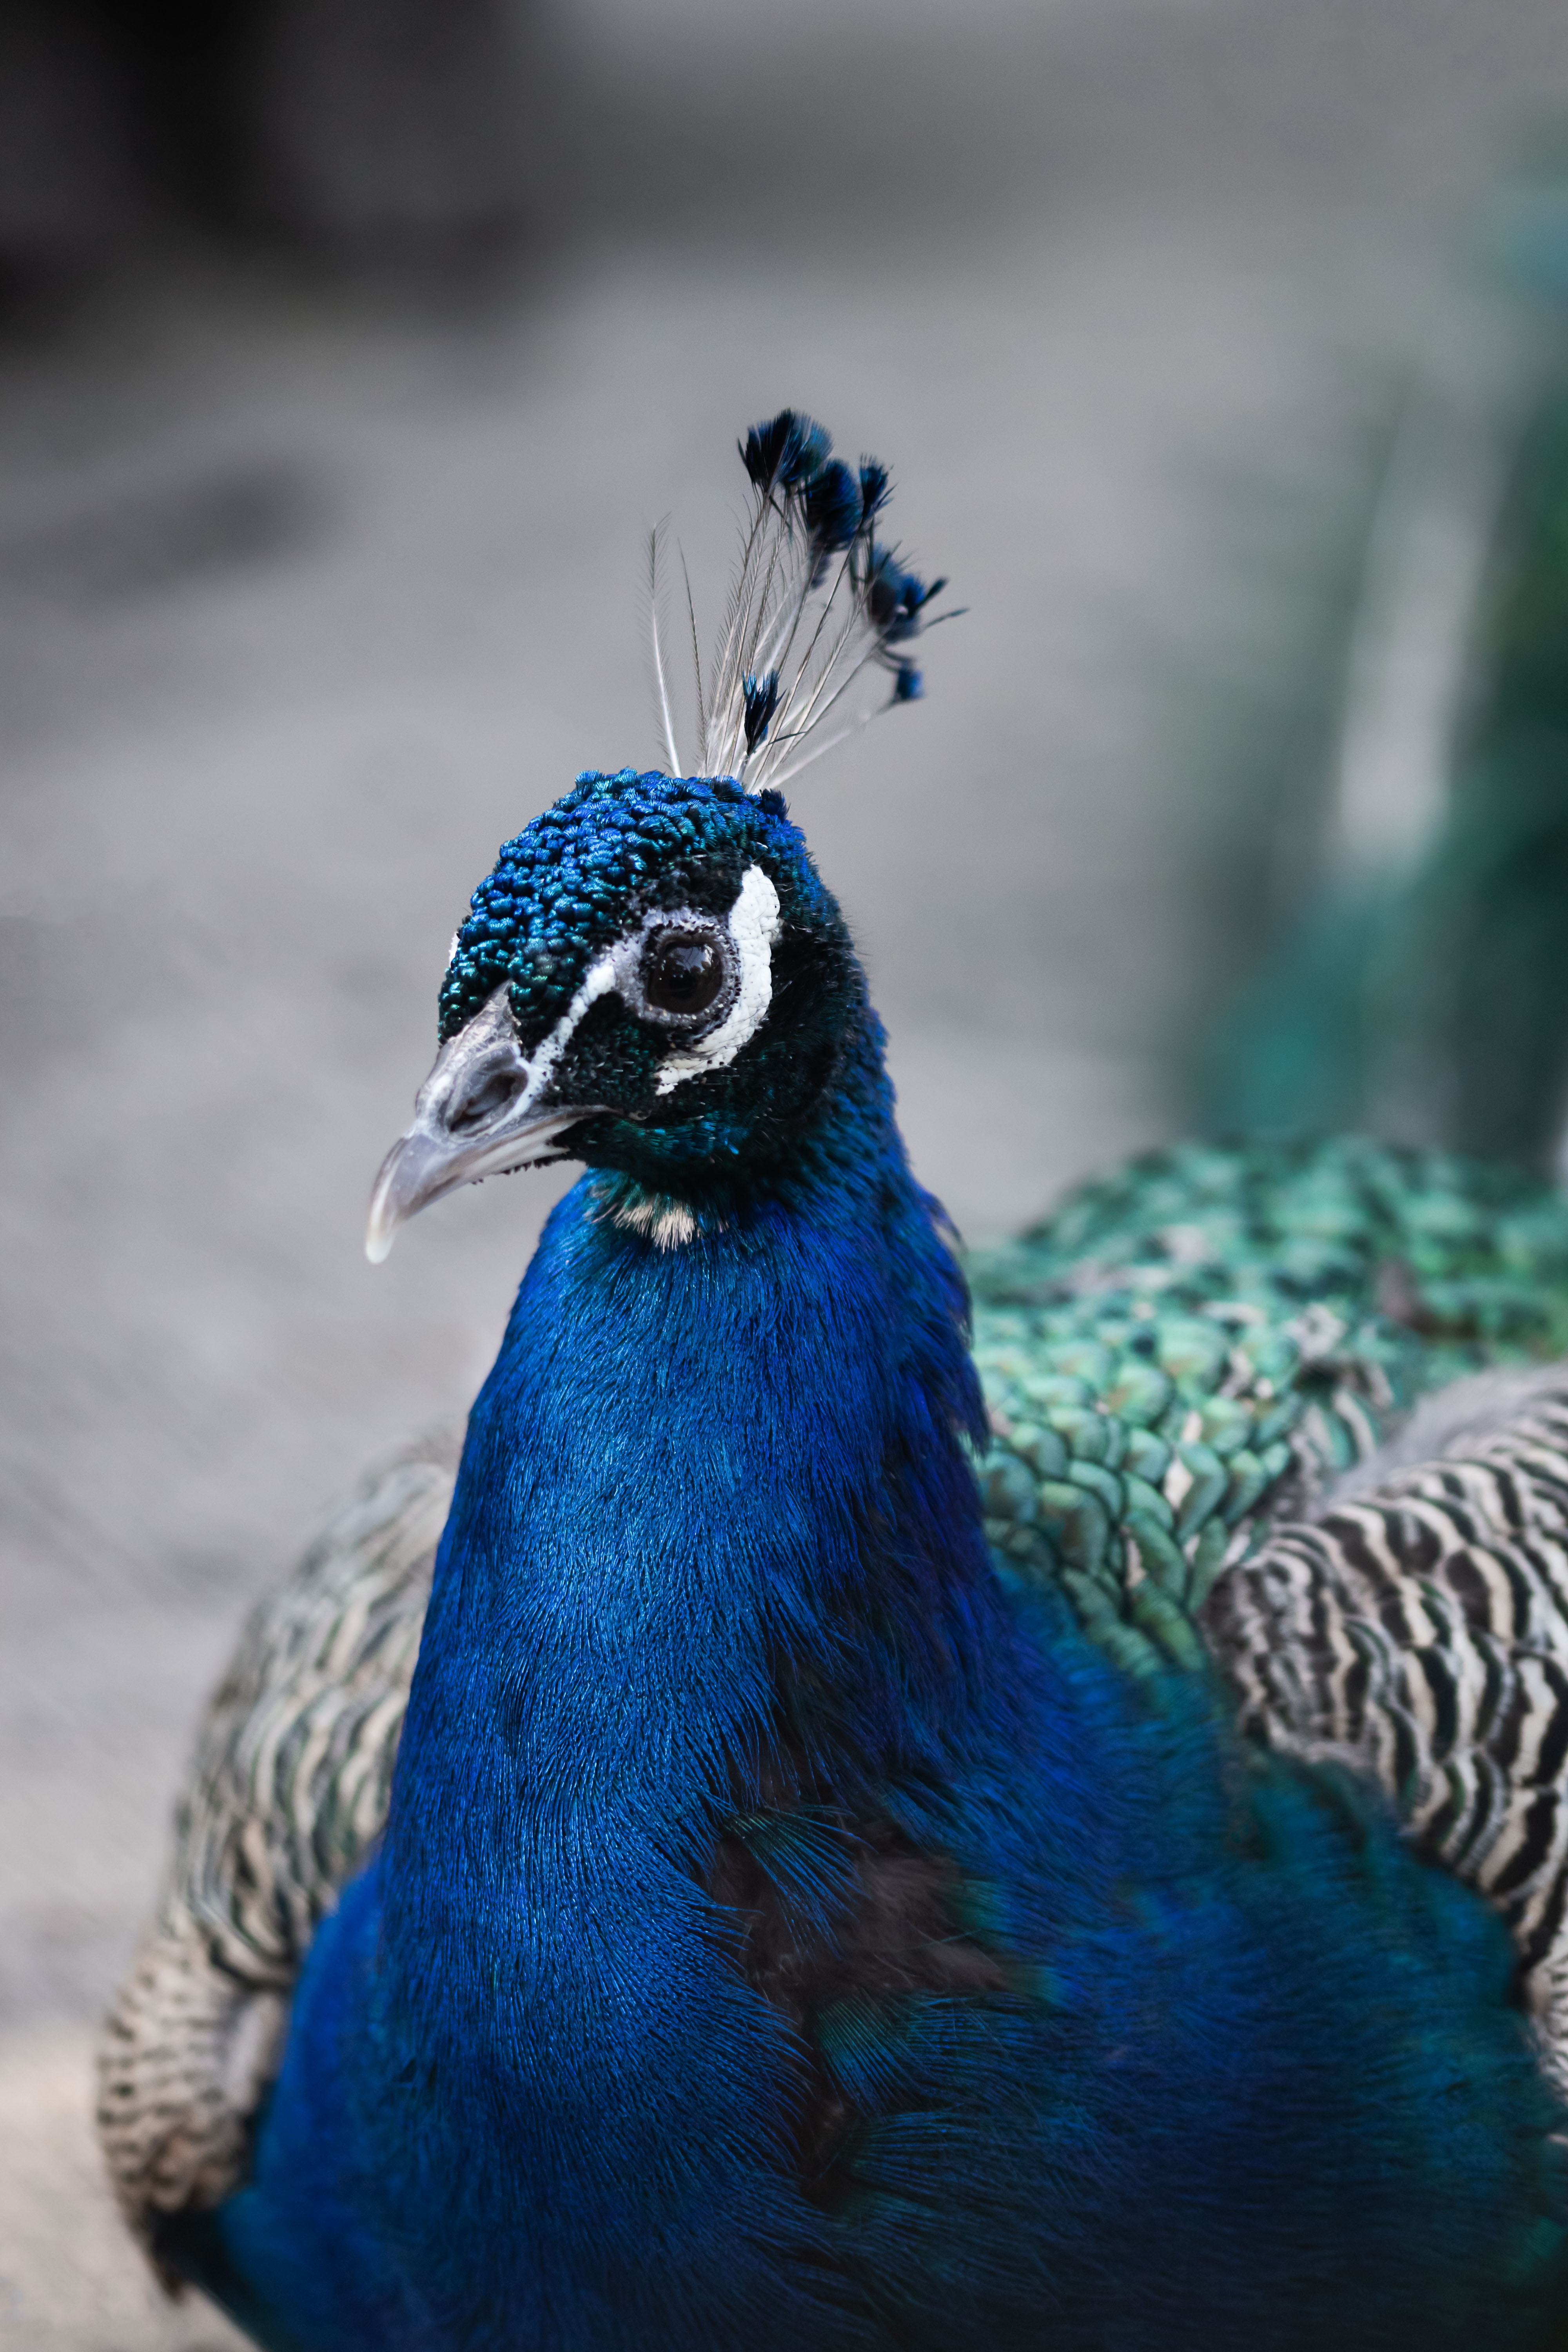 blue, green, and black peacock